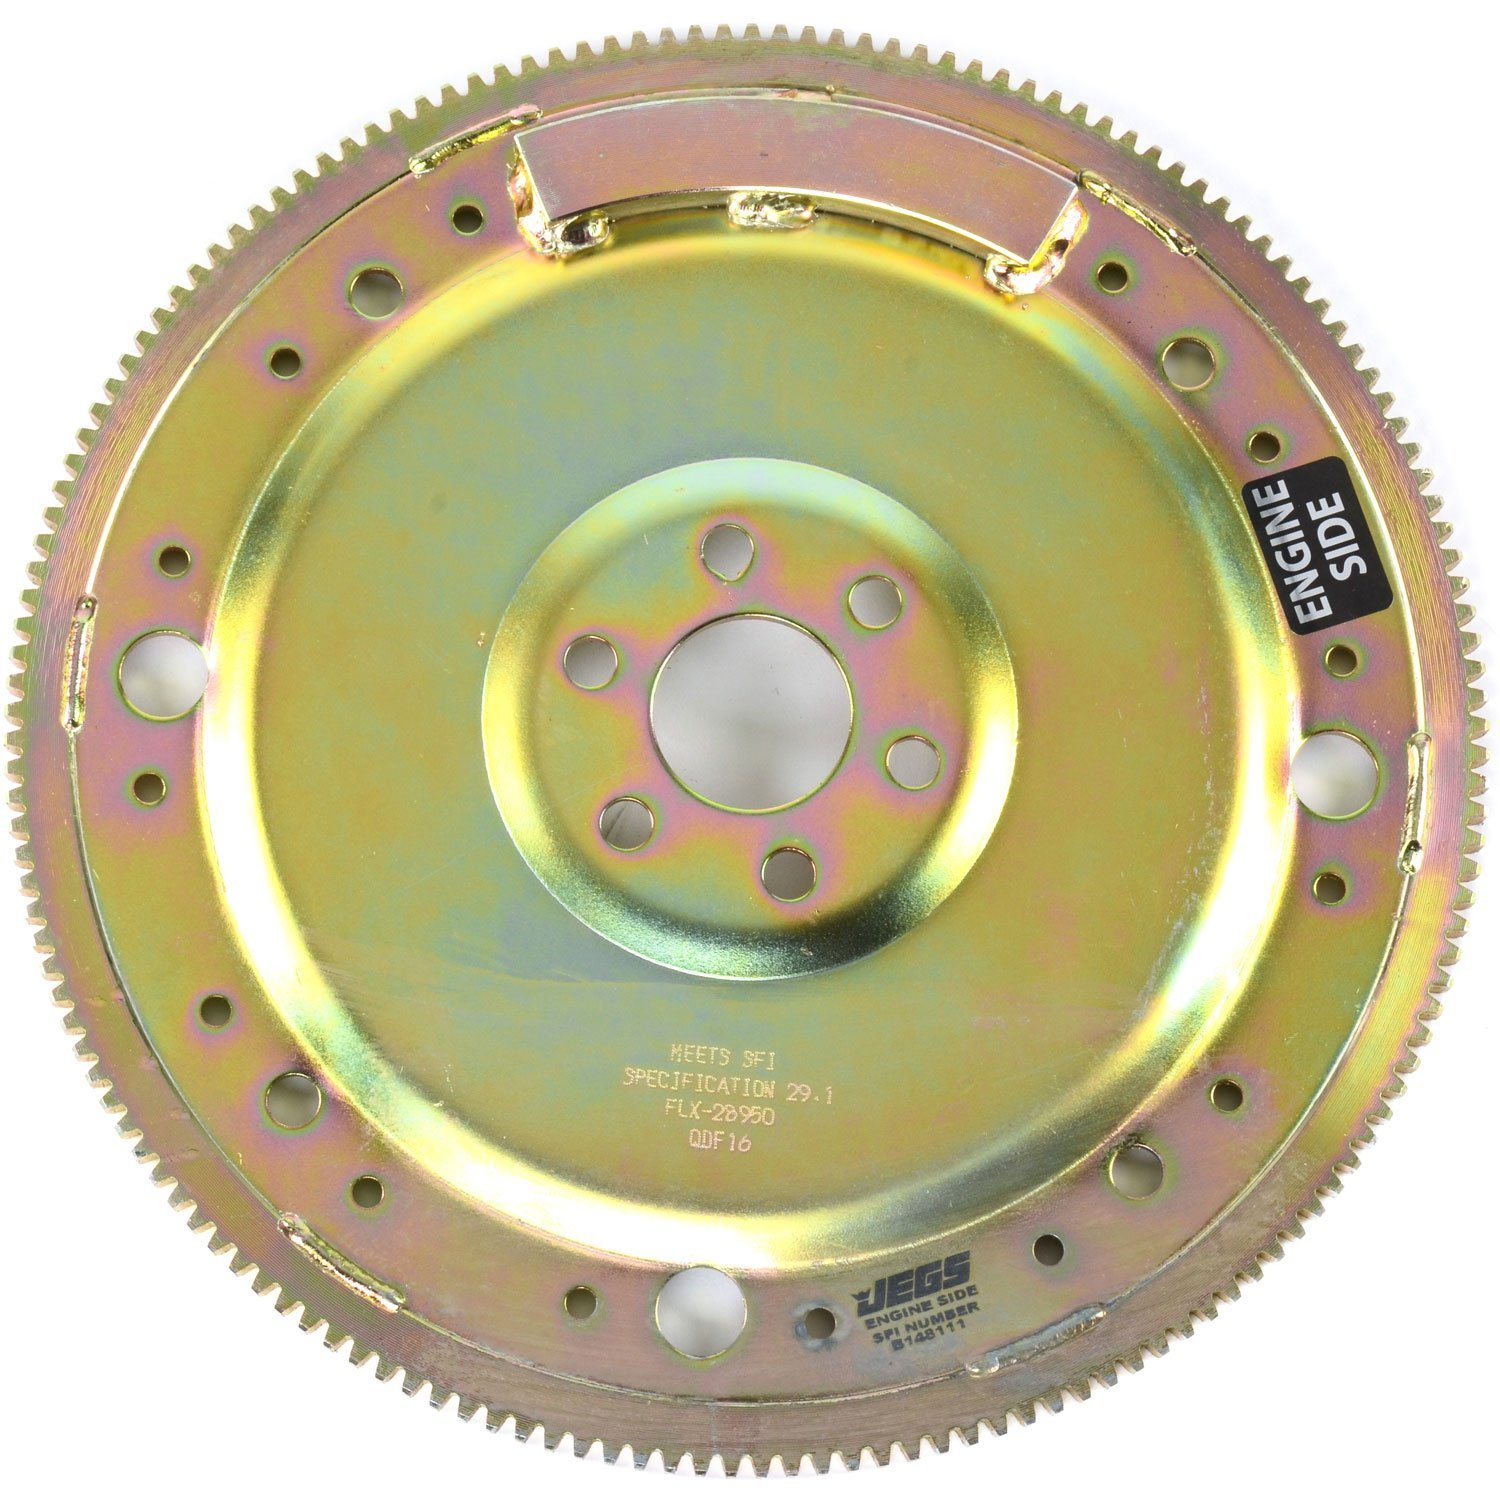 JEGS Performance Products 601092 Heavy-Duty SFI Flexplate 1983-1995 Small Block